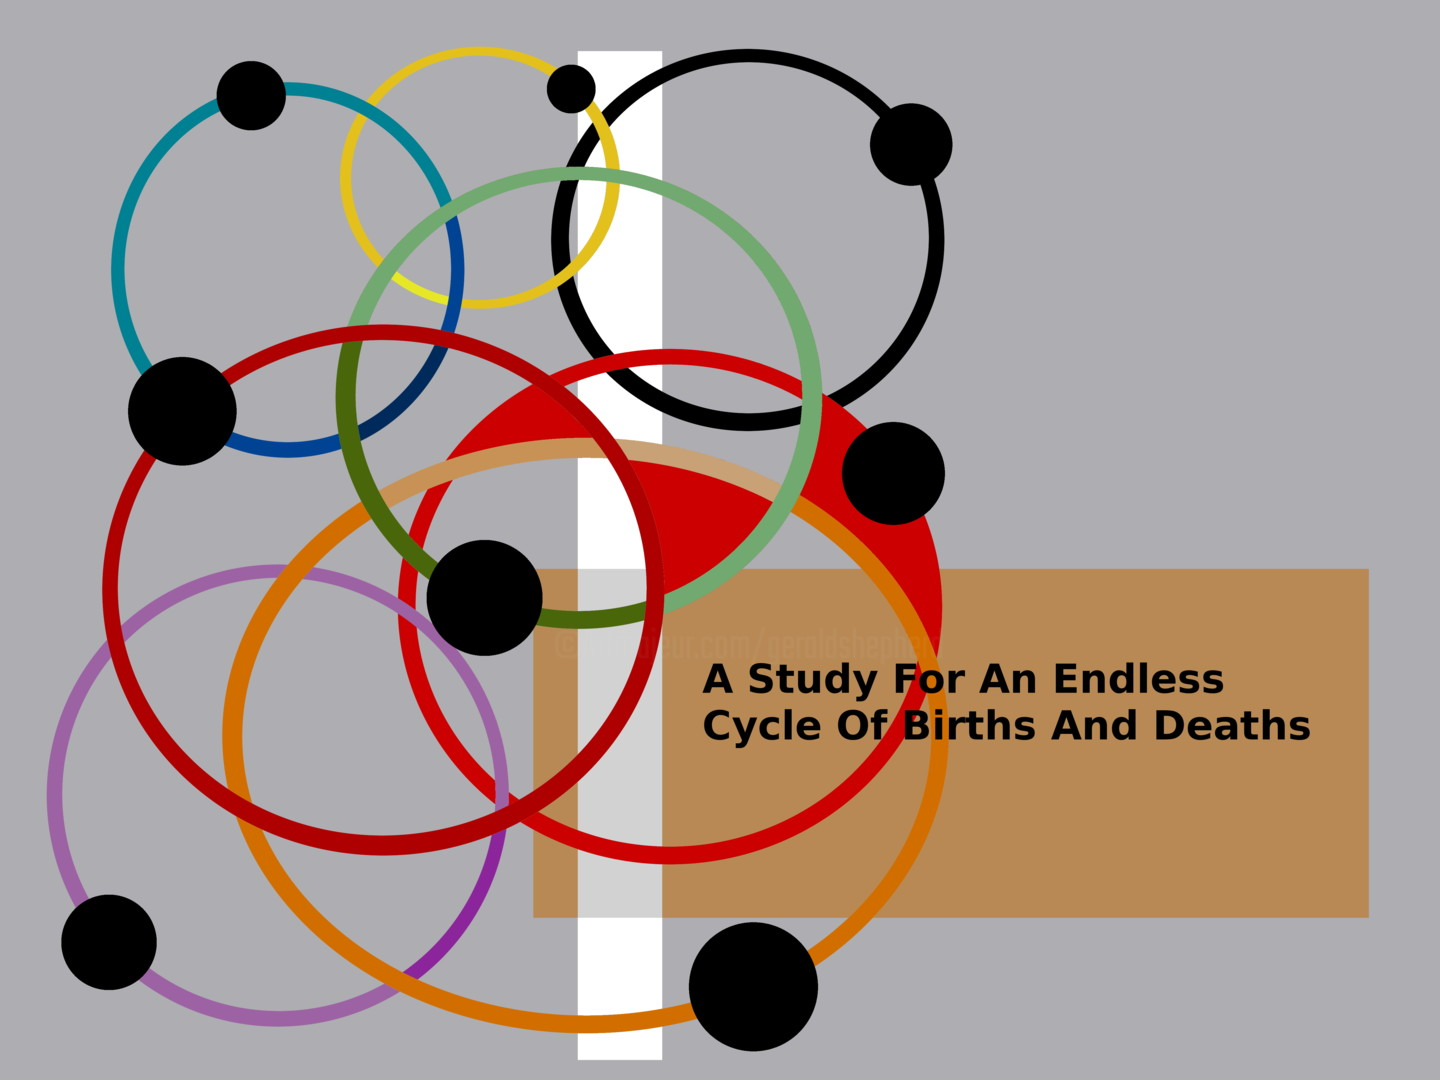 Gerald Shepherd - A Study For An Endless Cycle Of Births And Deaths